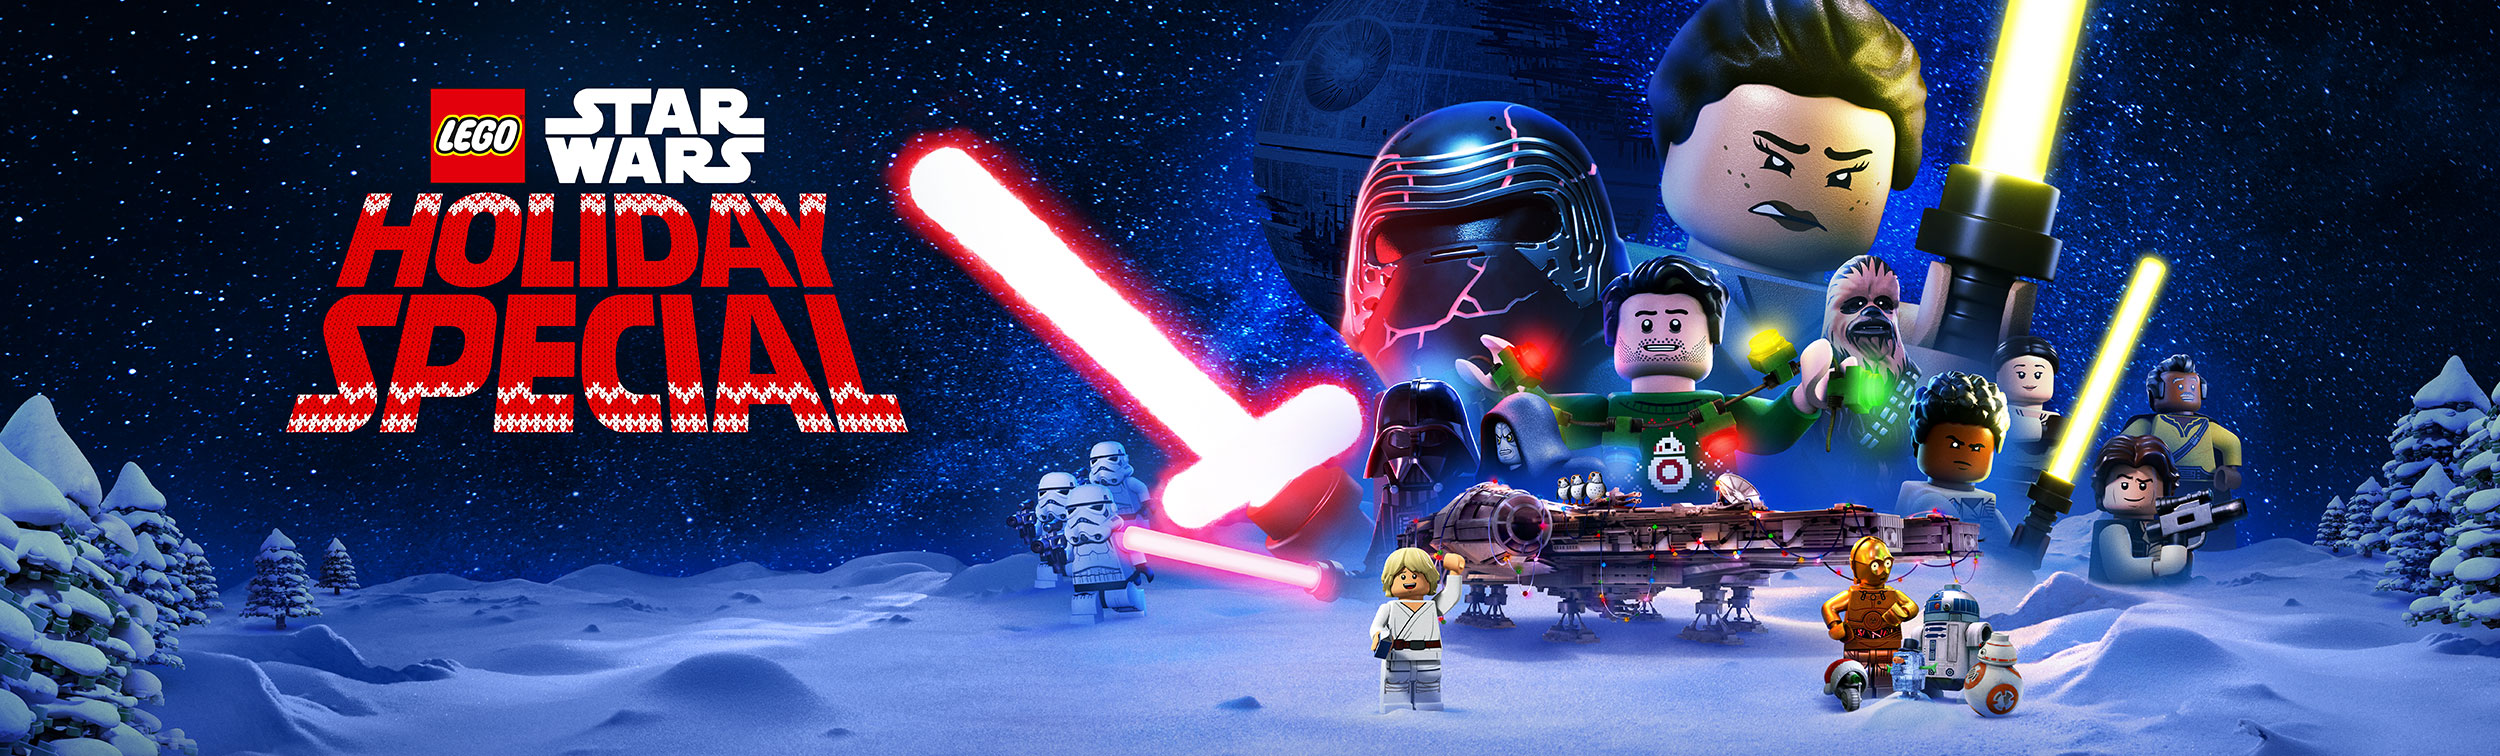 The Lego Star Wars Holiday Special | Billboard Finishing & Illustration